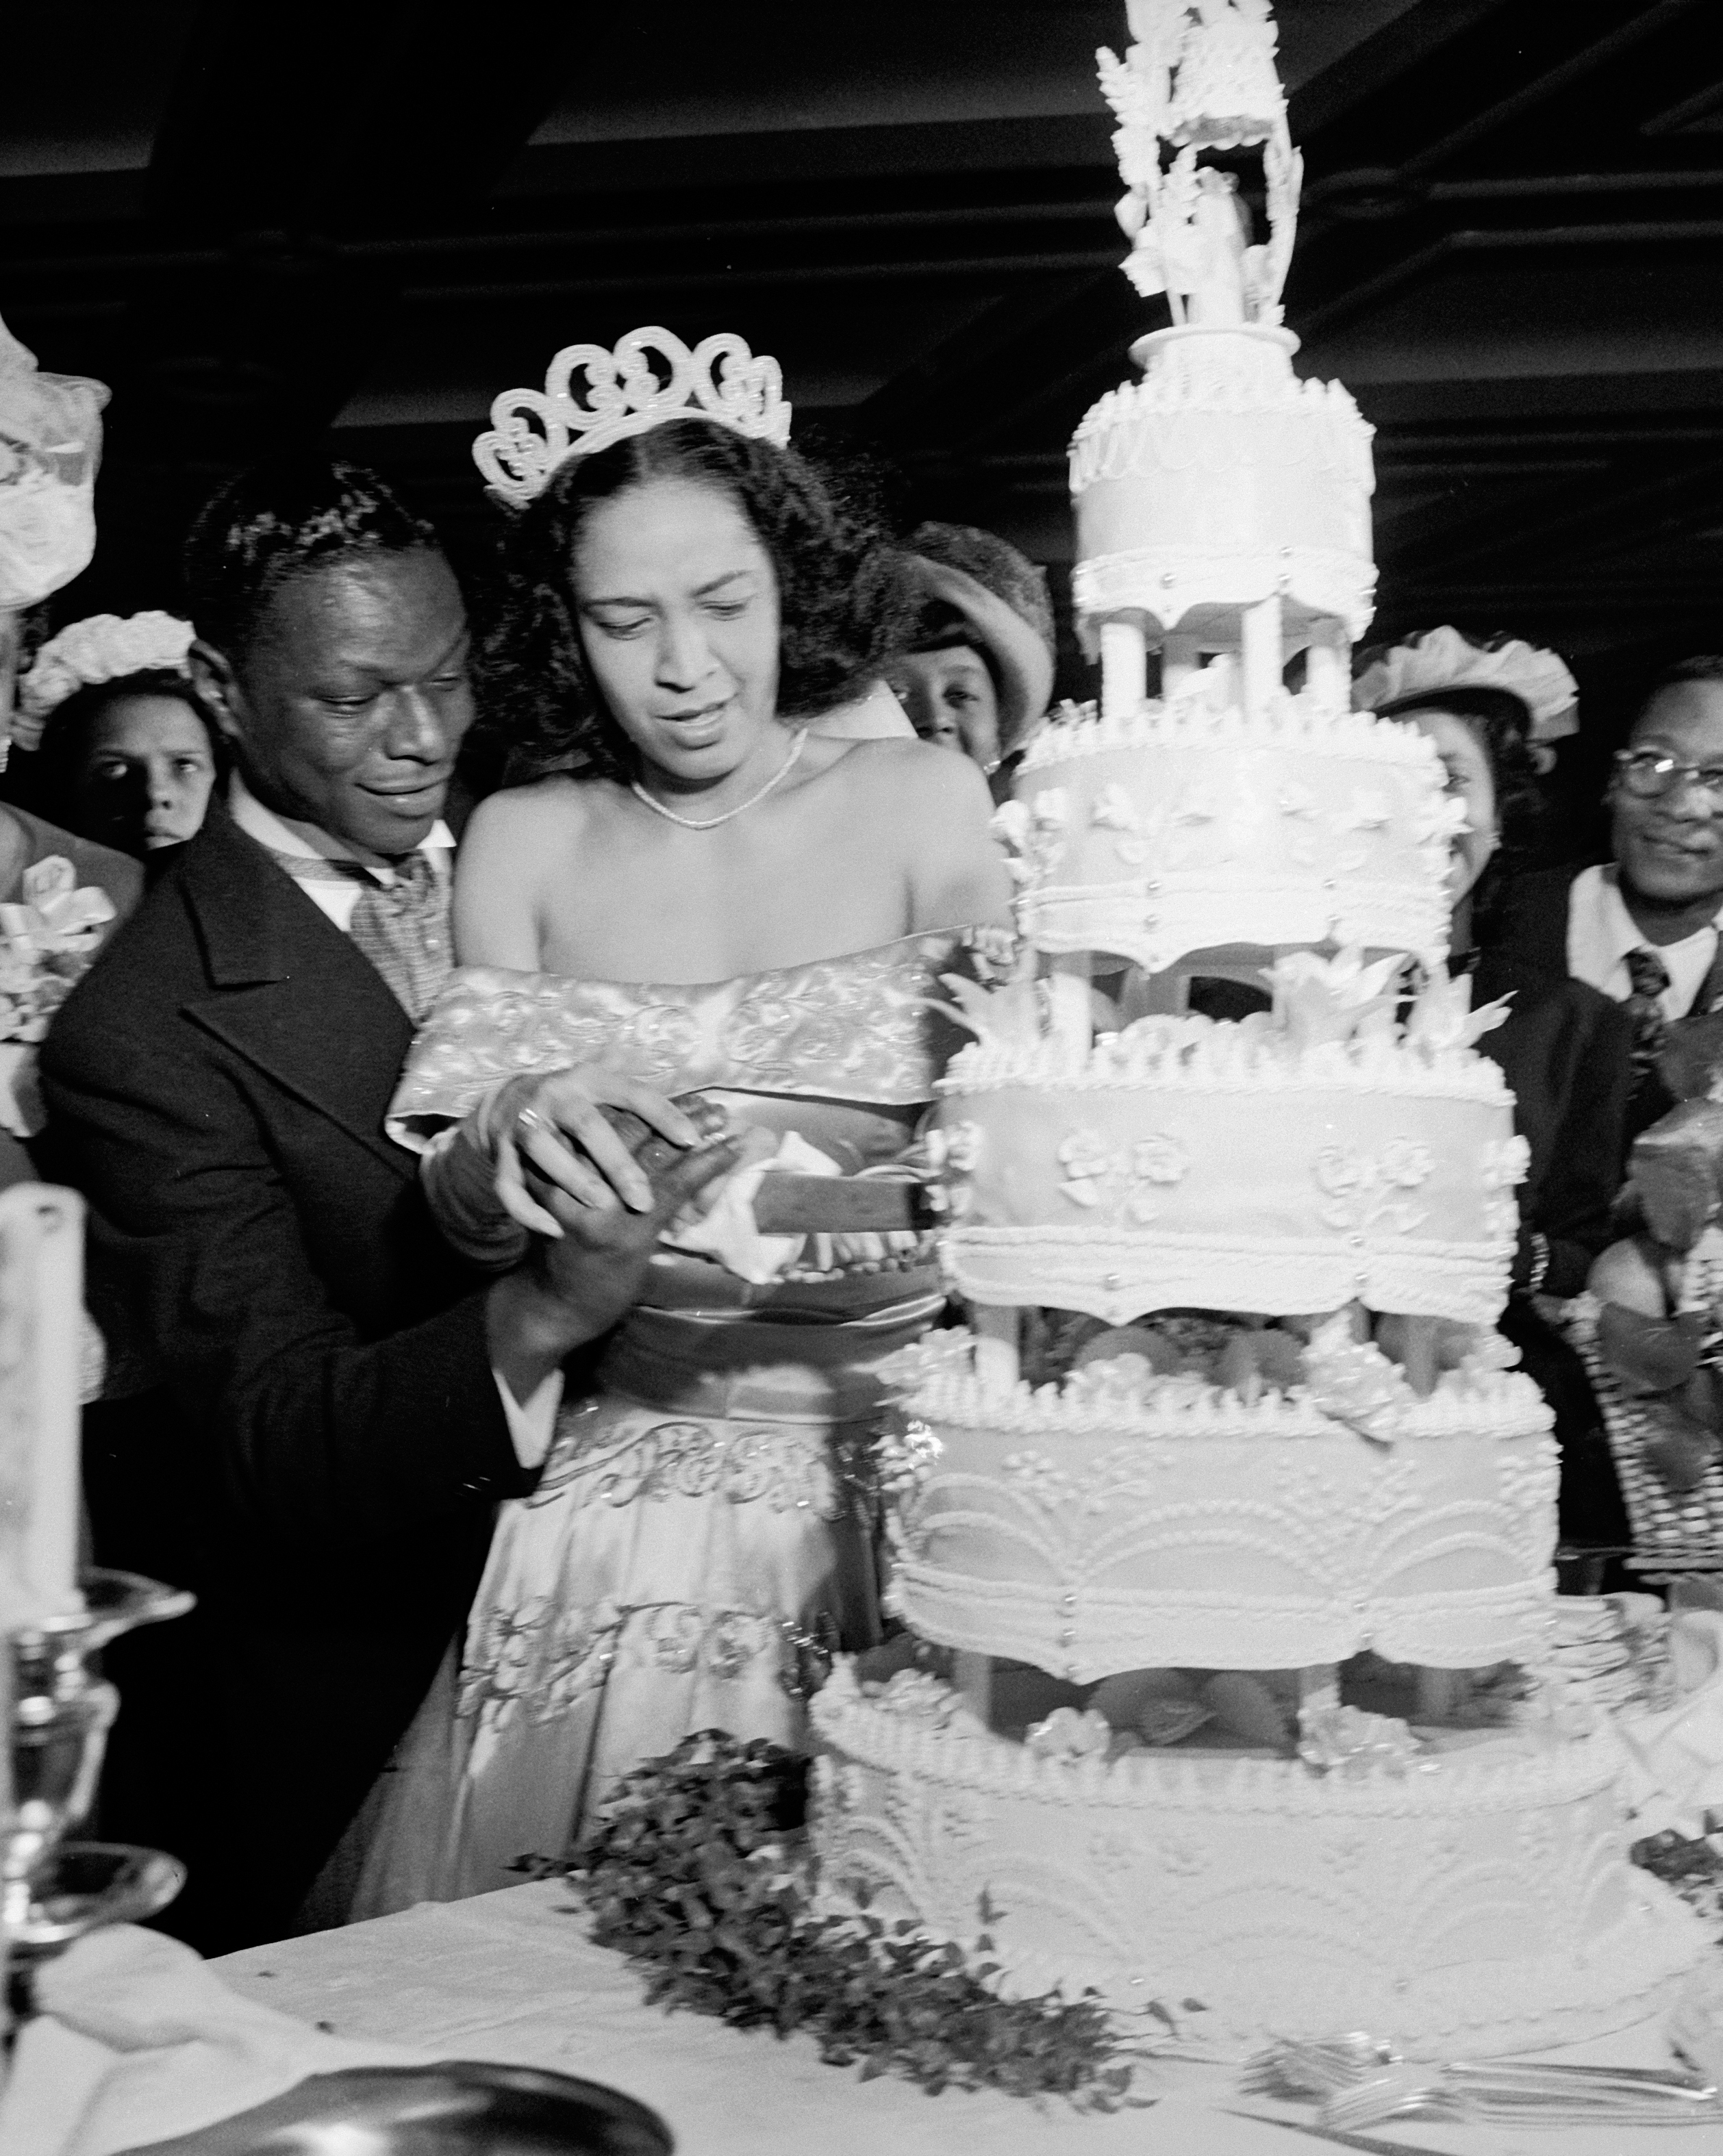 celebrity-vintage-wedding-cakes-nate-king-cole-50989998-1015.jpg